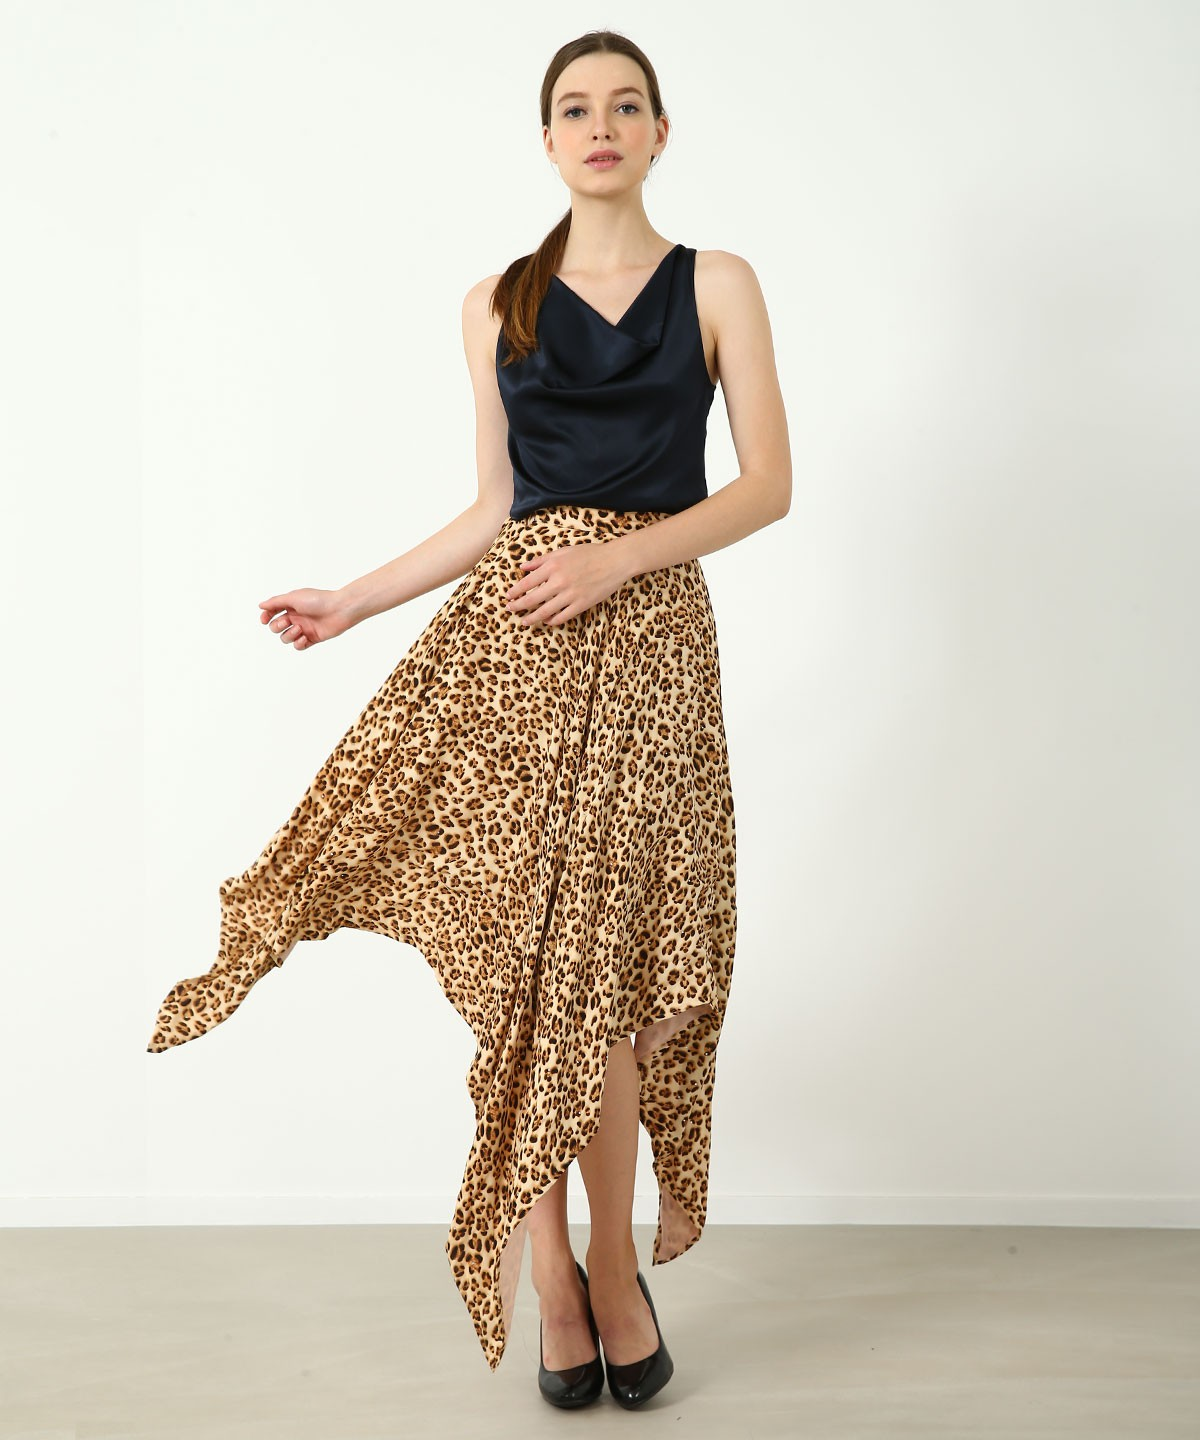 LOOK AT ME Leopard Skirt - Crystals